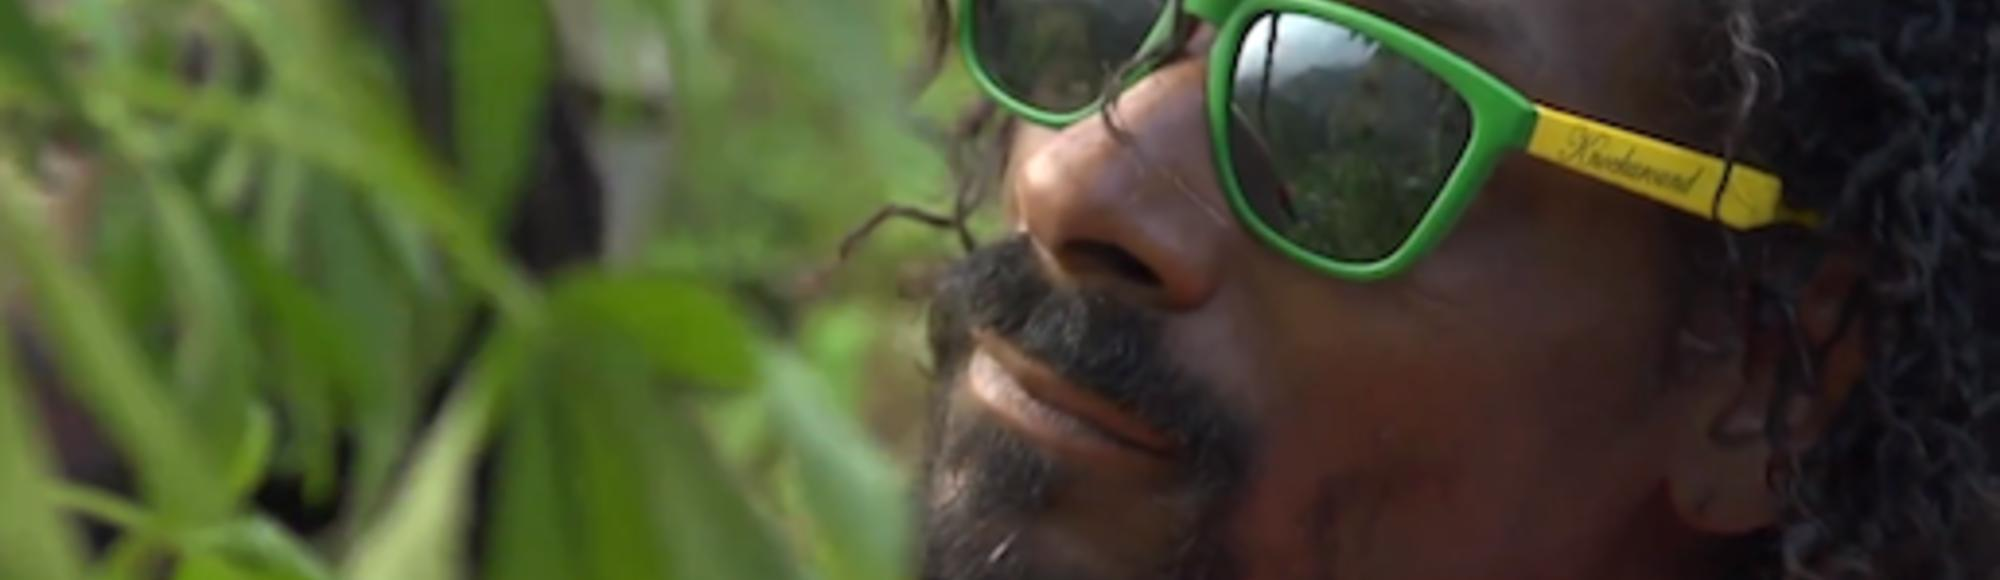 Snoop Lion's 'Reincarnated' Documentary Has a New Trailer